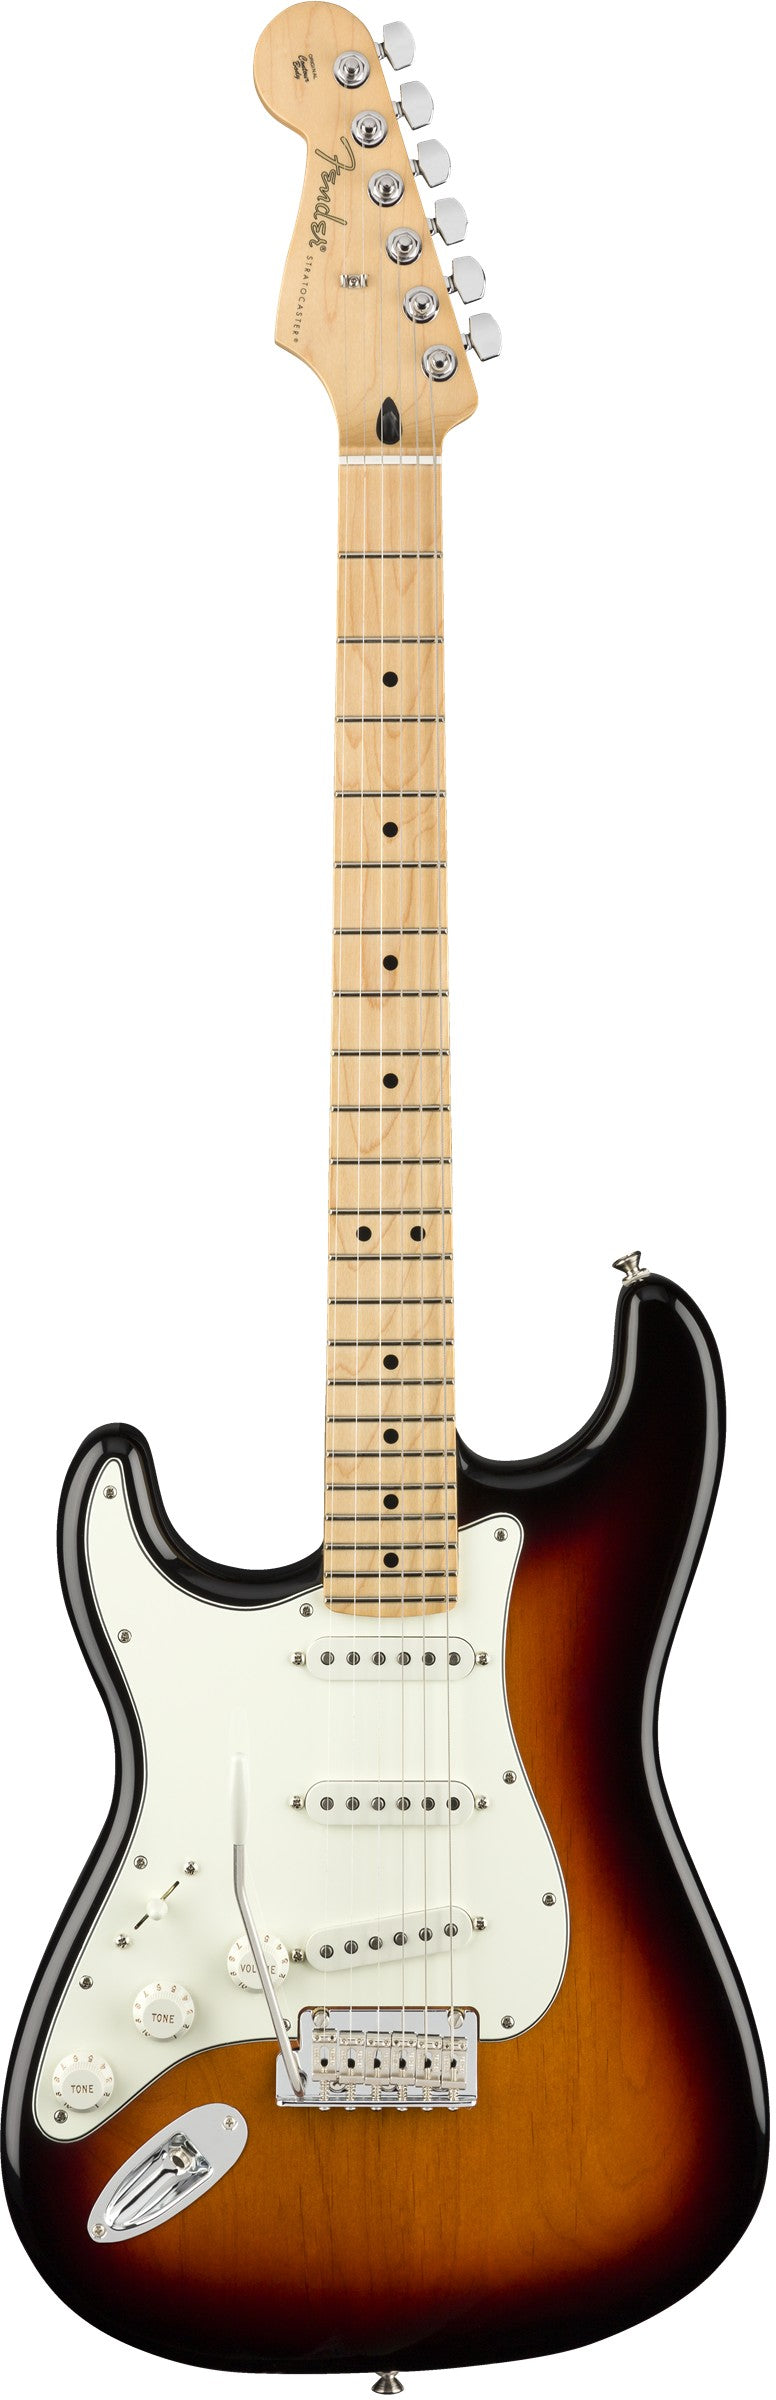 Fender Player Stratocaster Electric Guitar, Left Handed, Maple Fingerboard